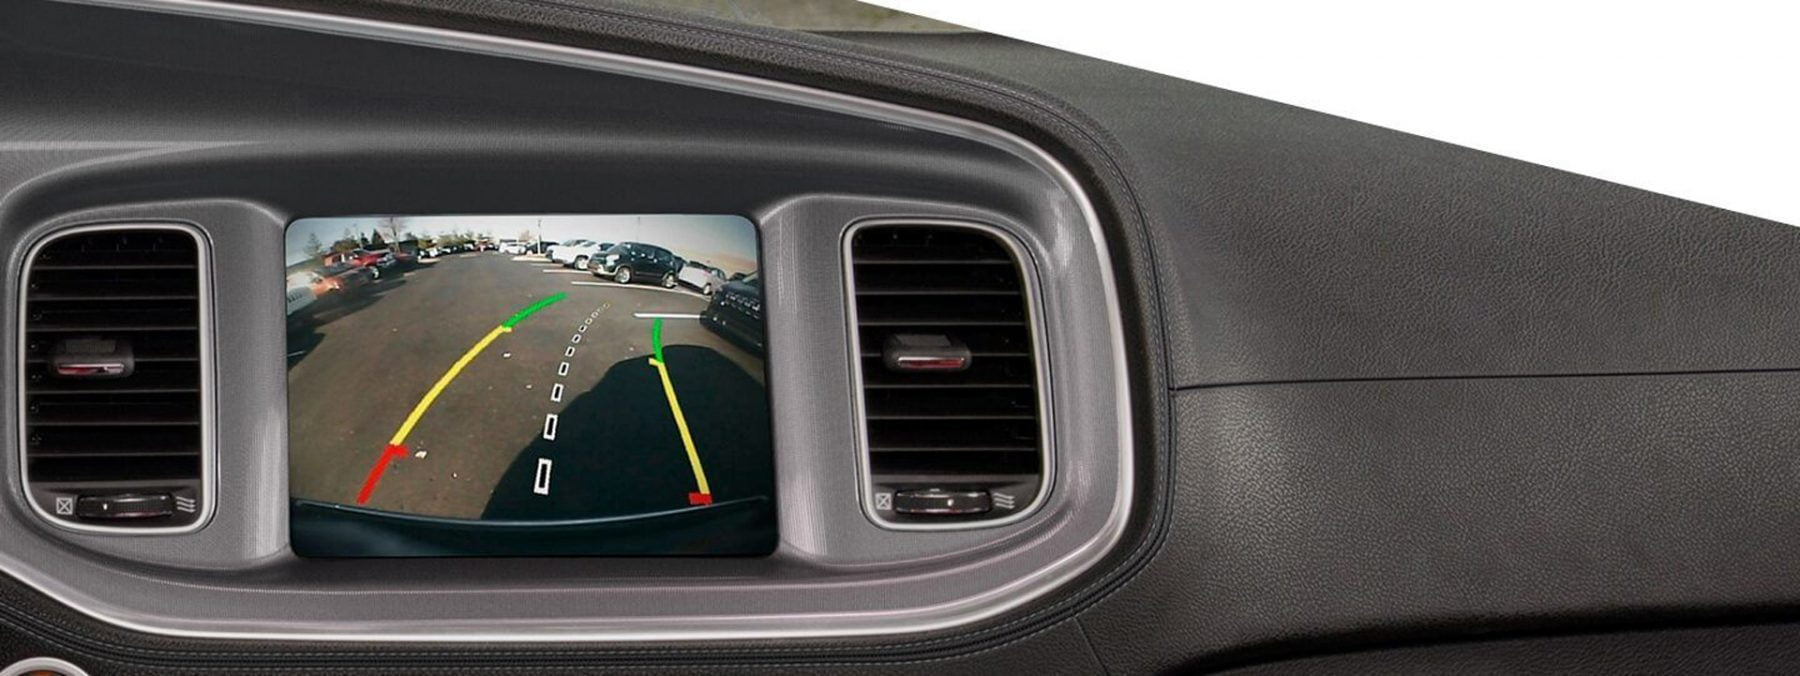 Dodge parking camera assistance